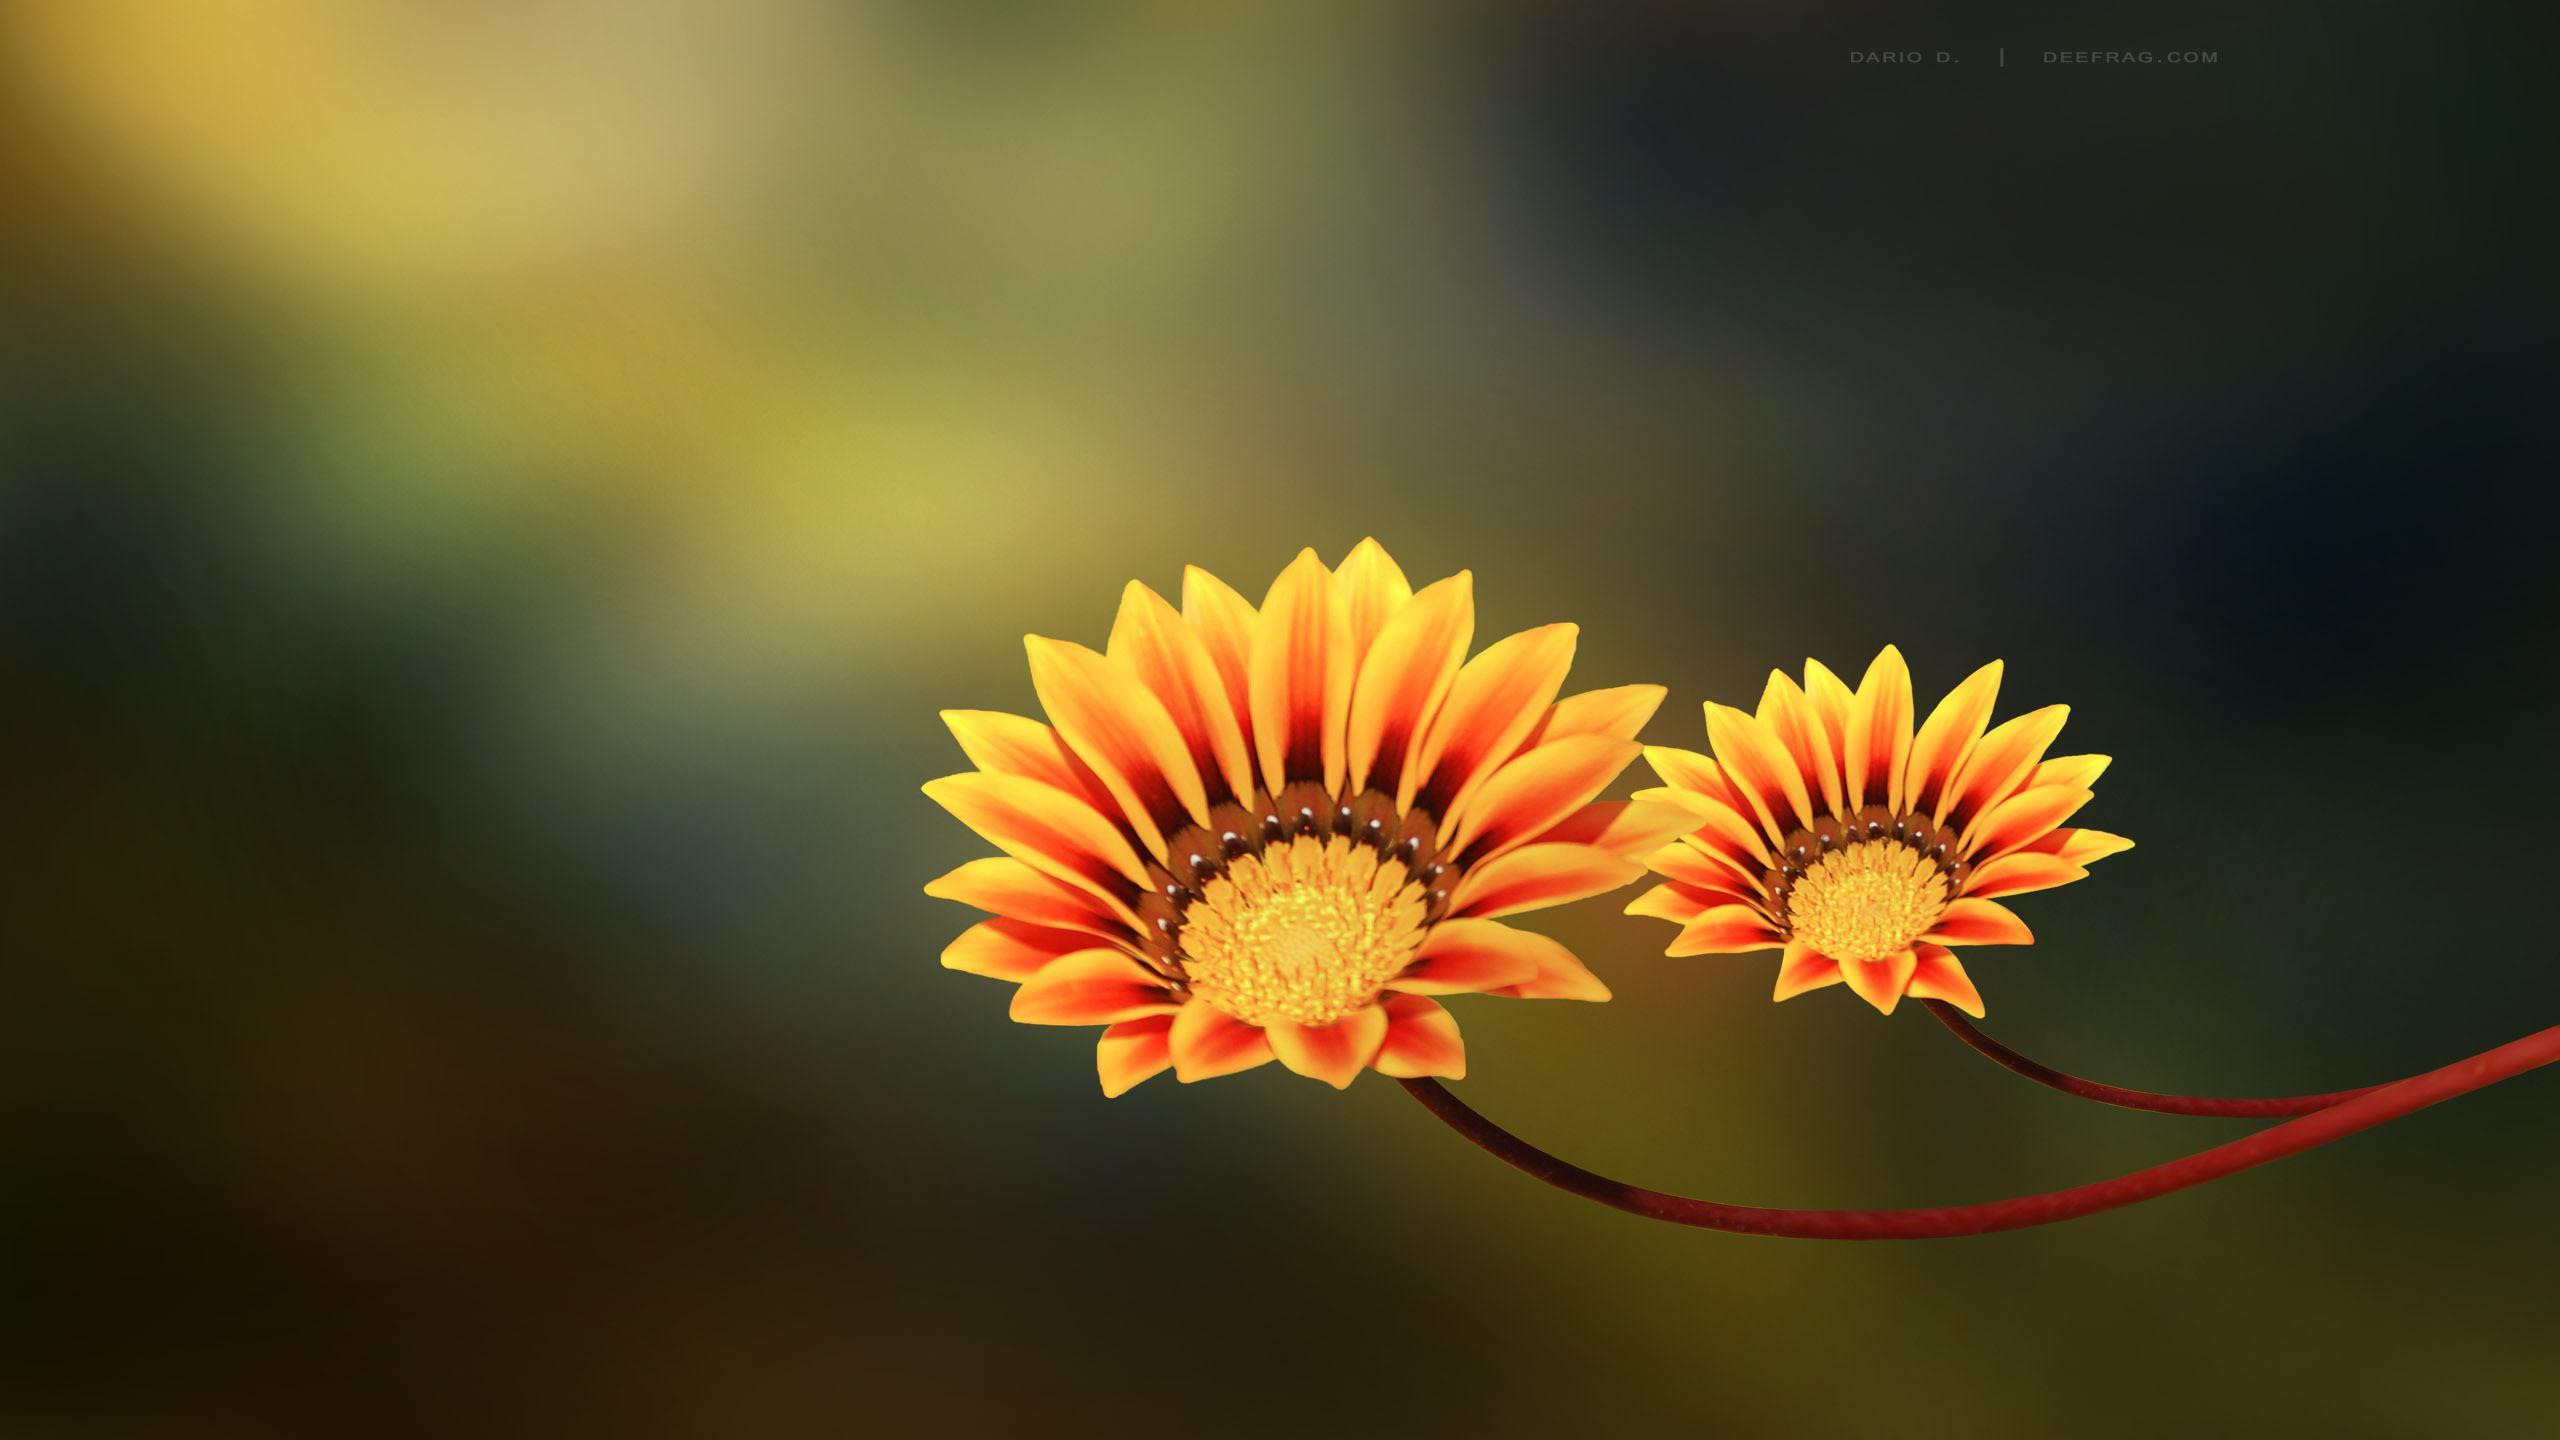 aquarius flower wallpaper hd - photo #34